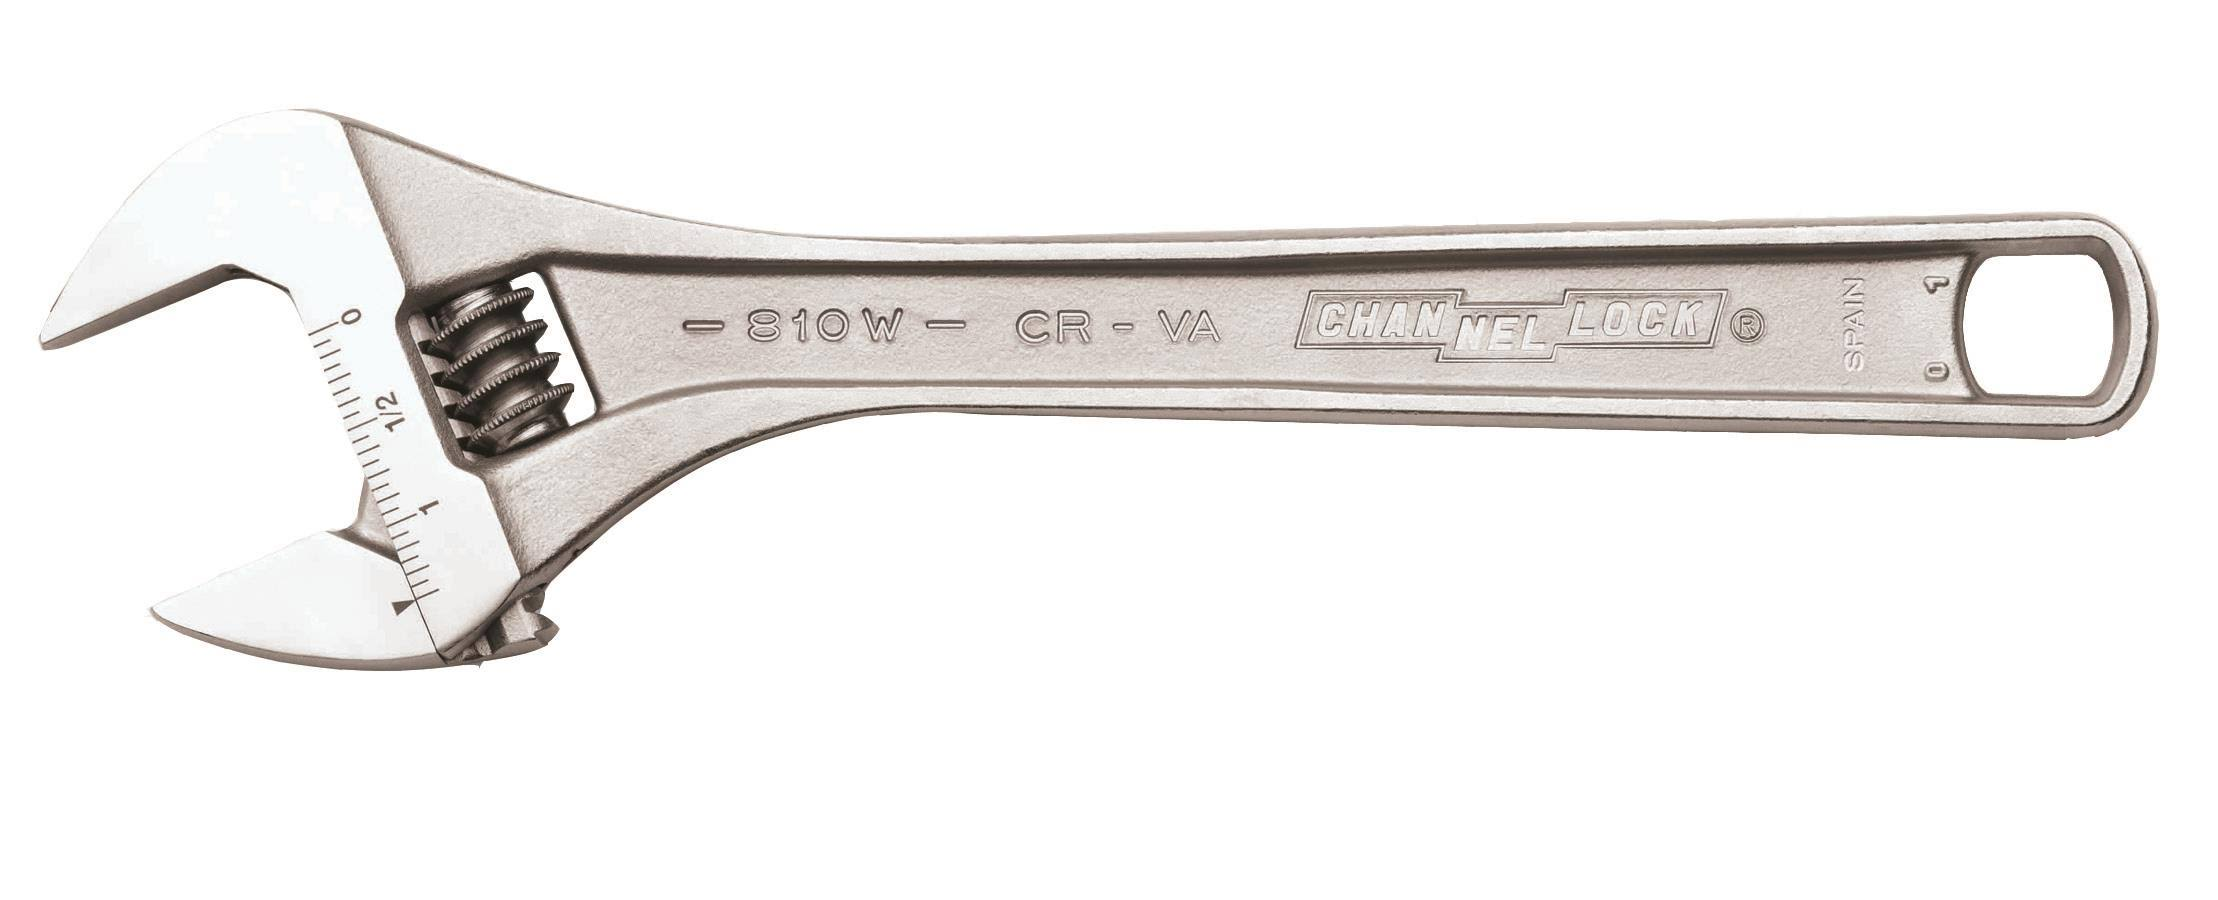 Channellock Adjustable Wrench - Chrome